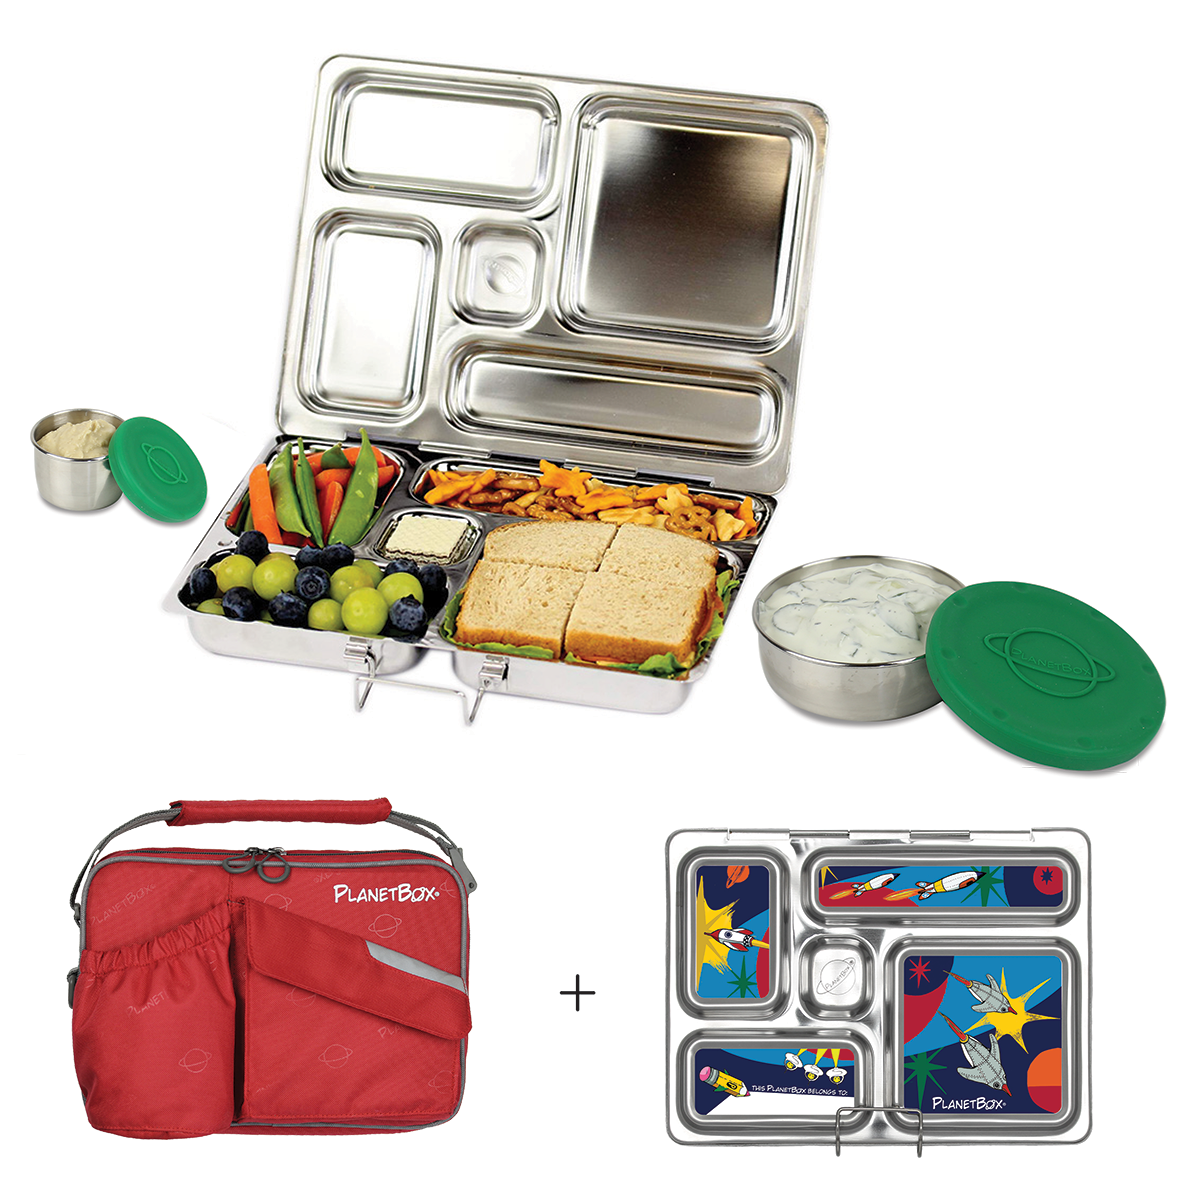 PlanetBox Rover Lunchbox - Red Carry Bag with Rocket Magnets